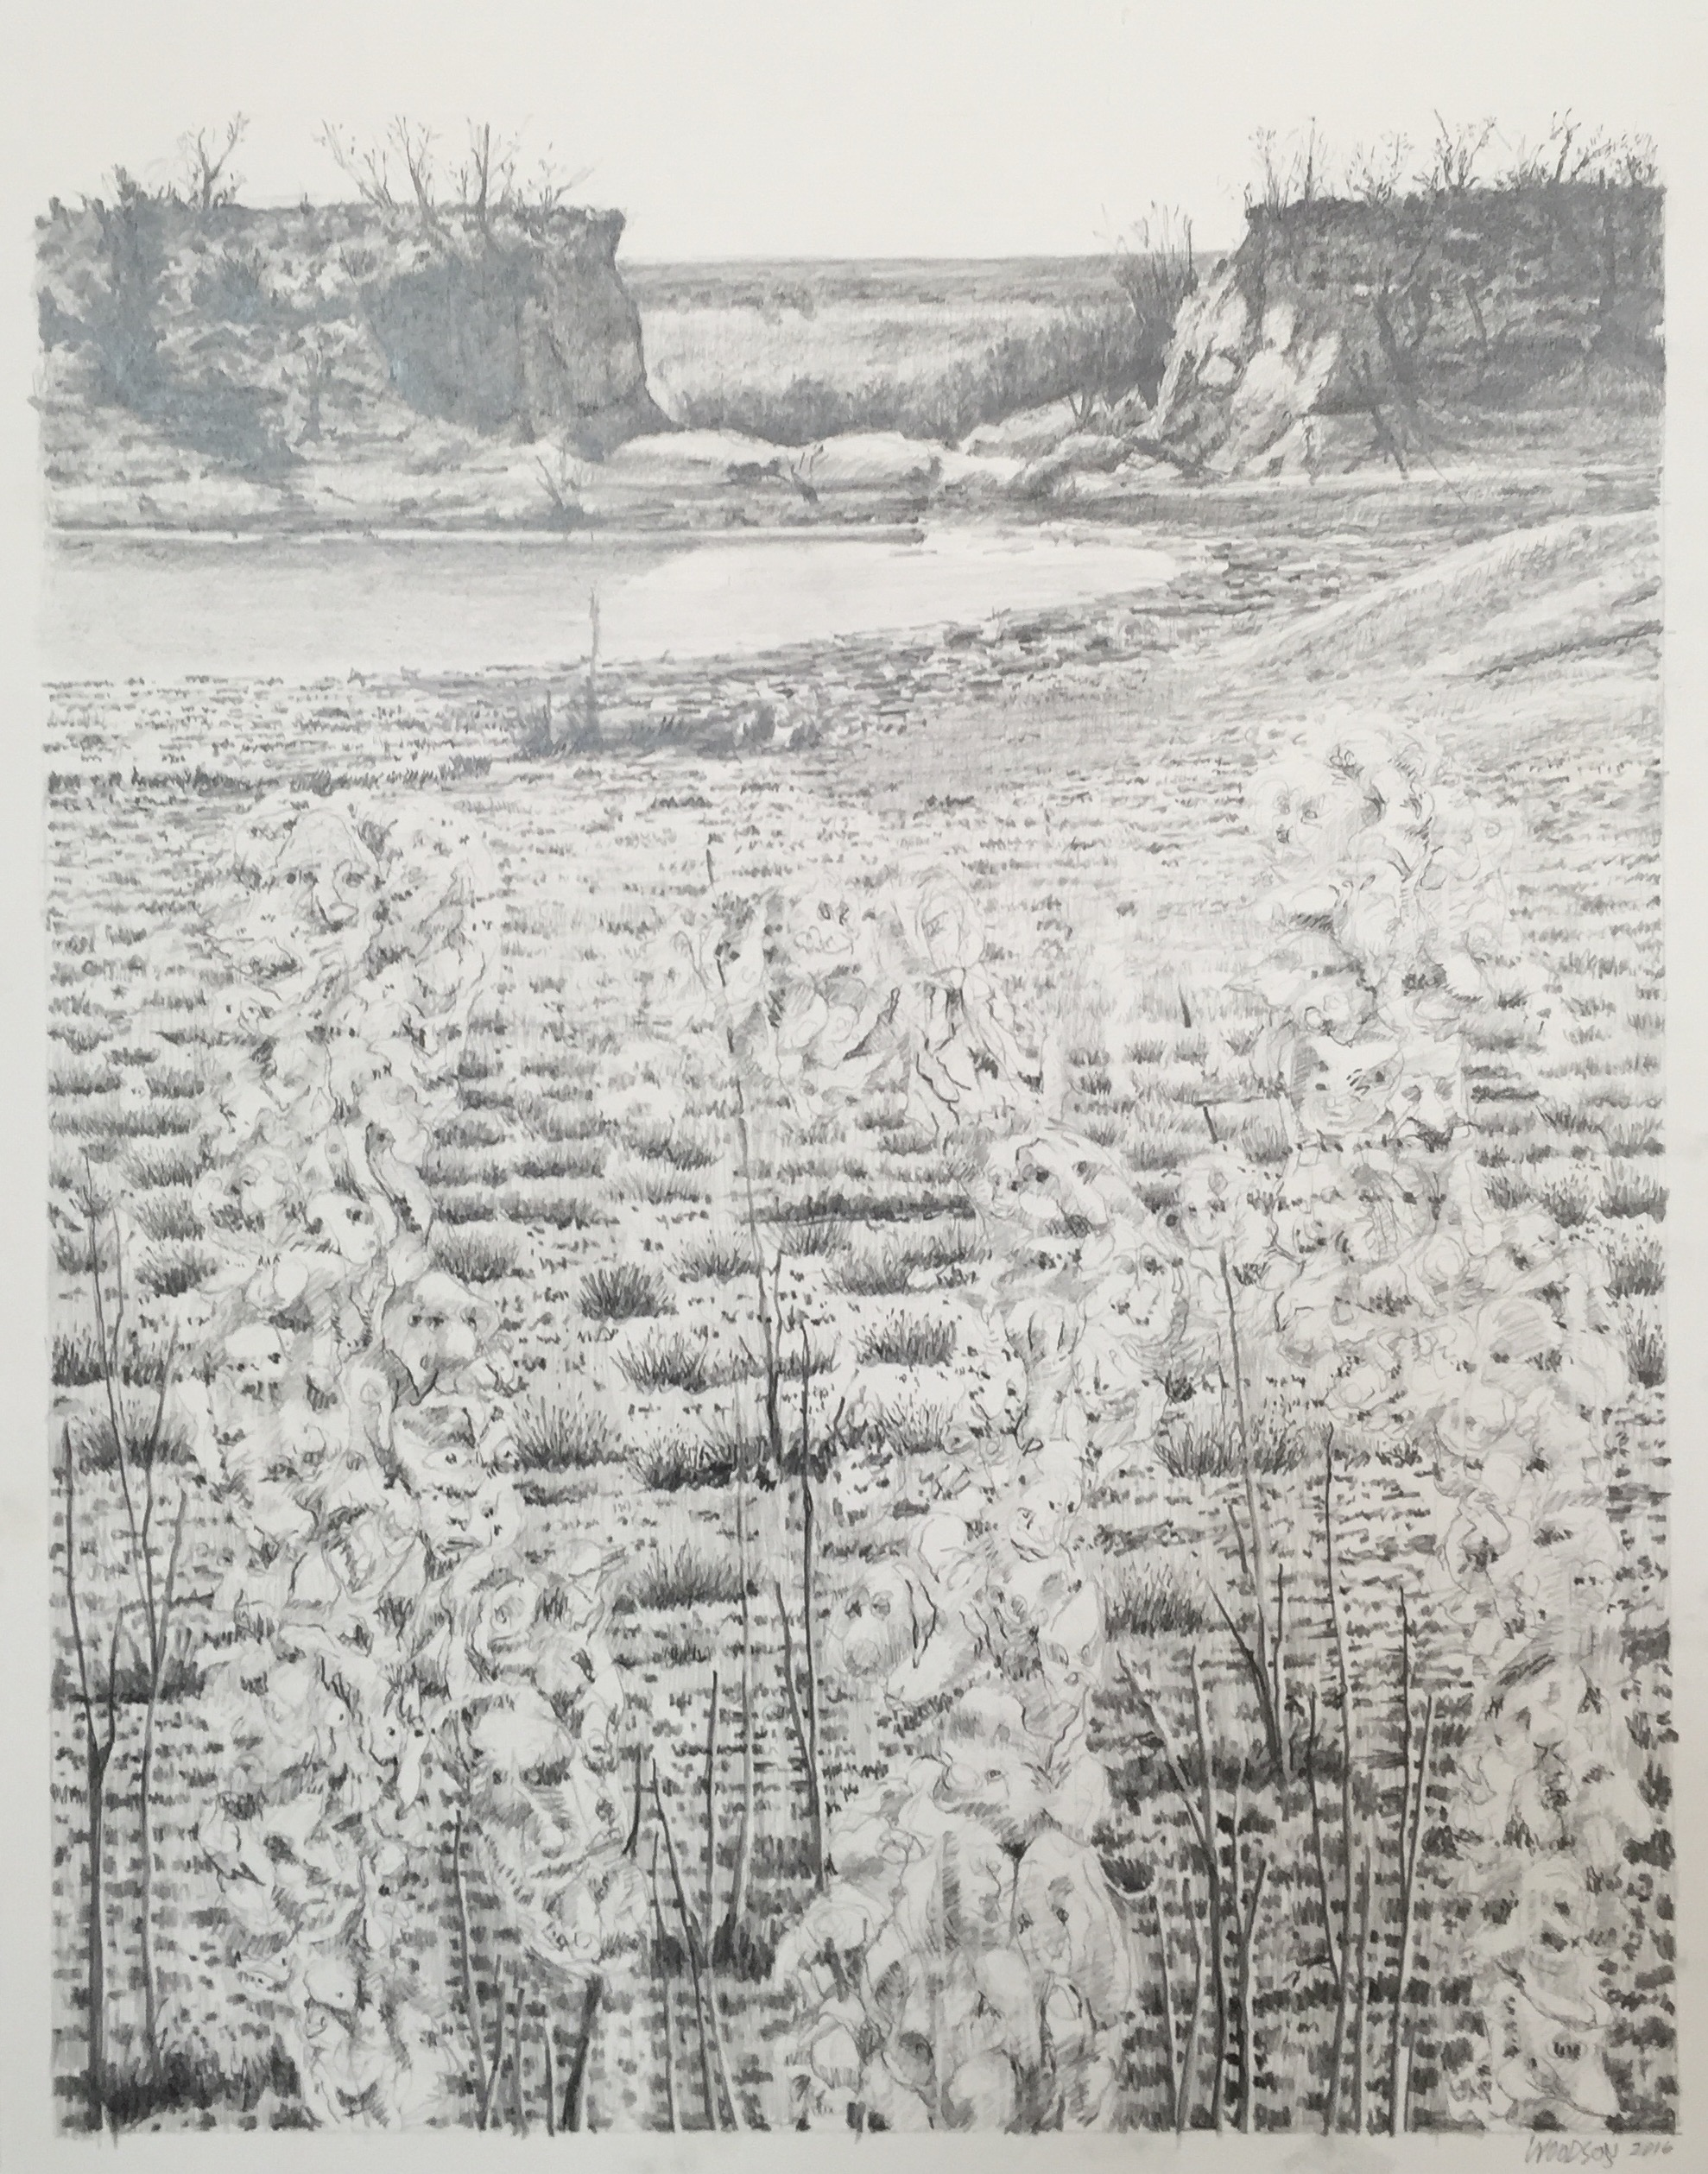 """Edwards Ranch Project Drawing 2016 graphite on paper  24"""" x 19"""" cat no 16002 C"""